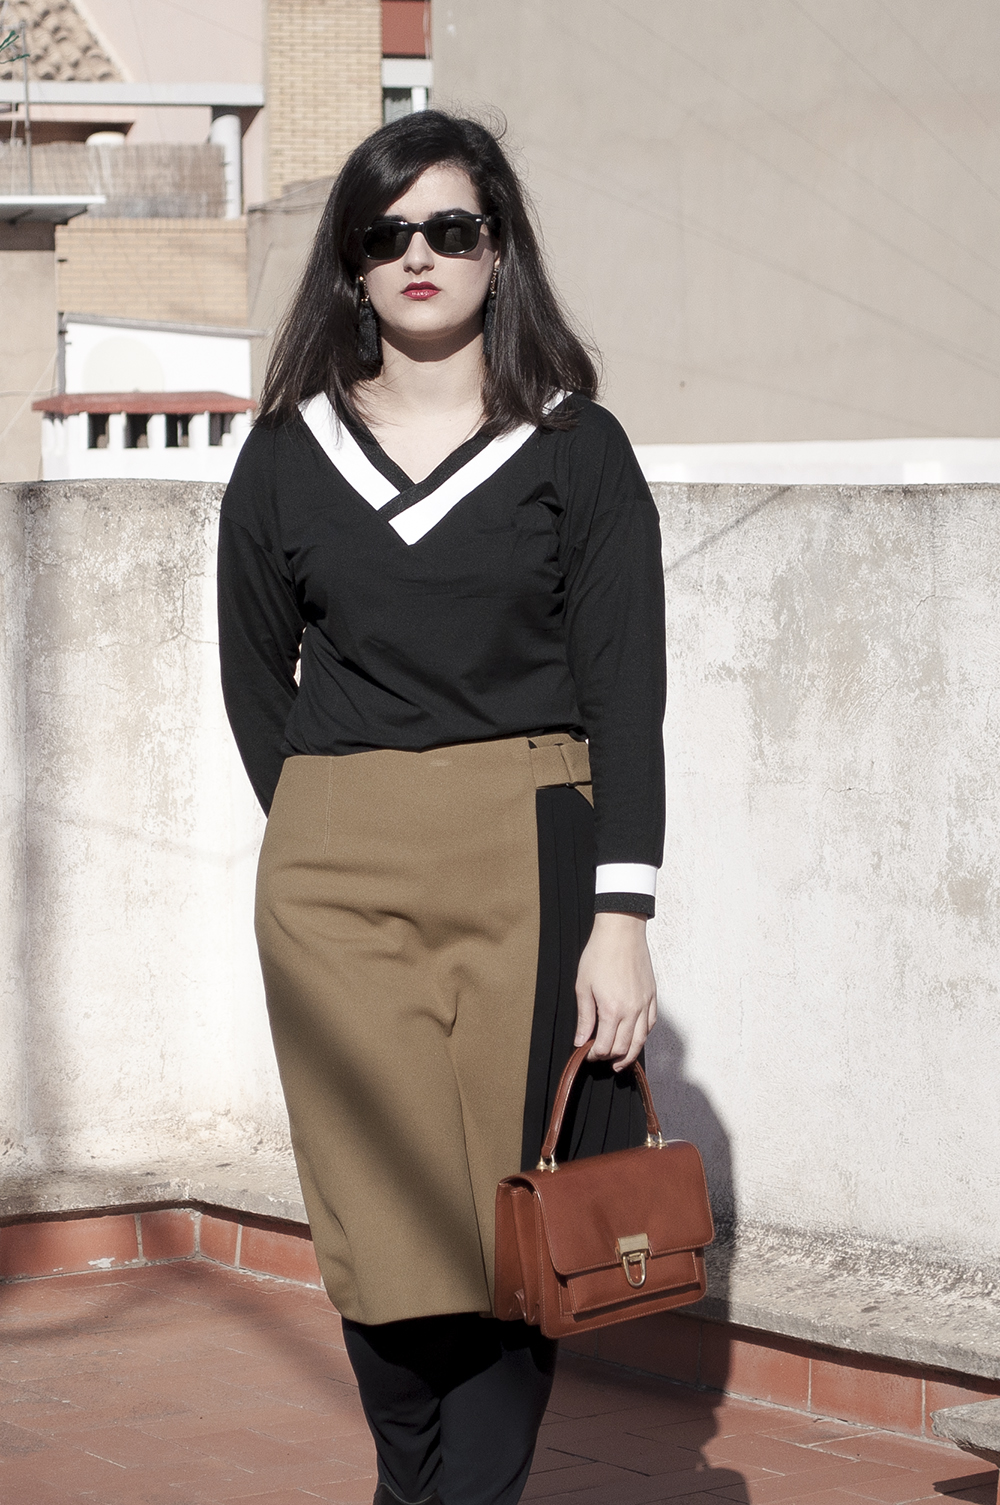 somethingfashion spain firenze italy valencia bloggers outfit shein collaboration blackwhite college sweater_0208